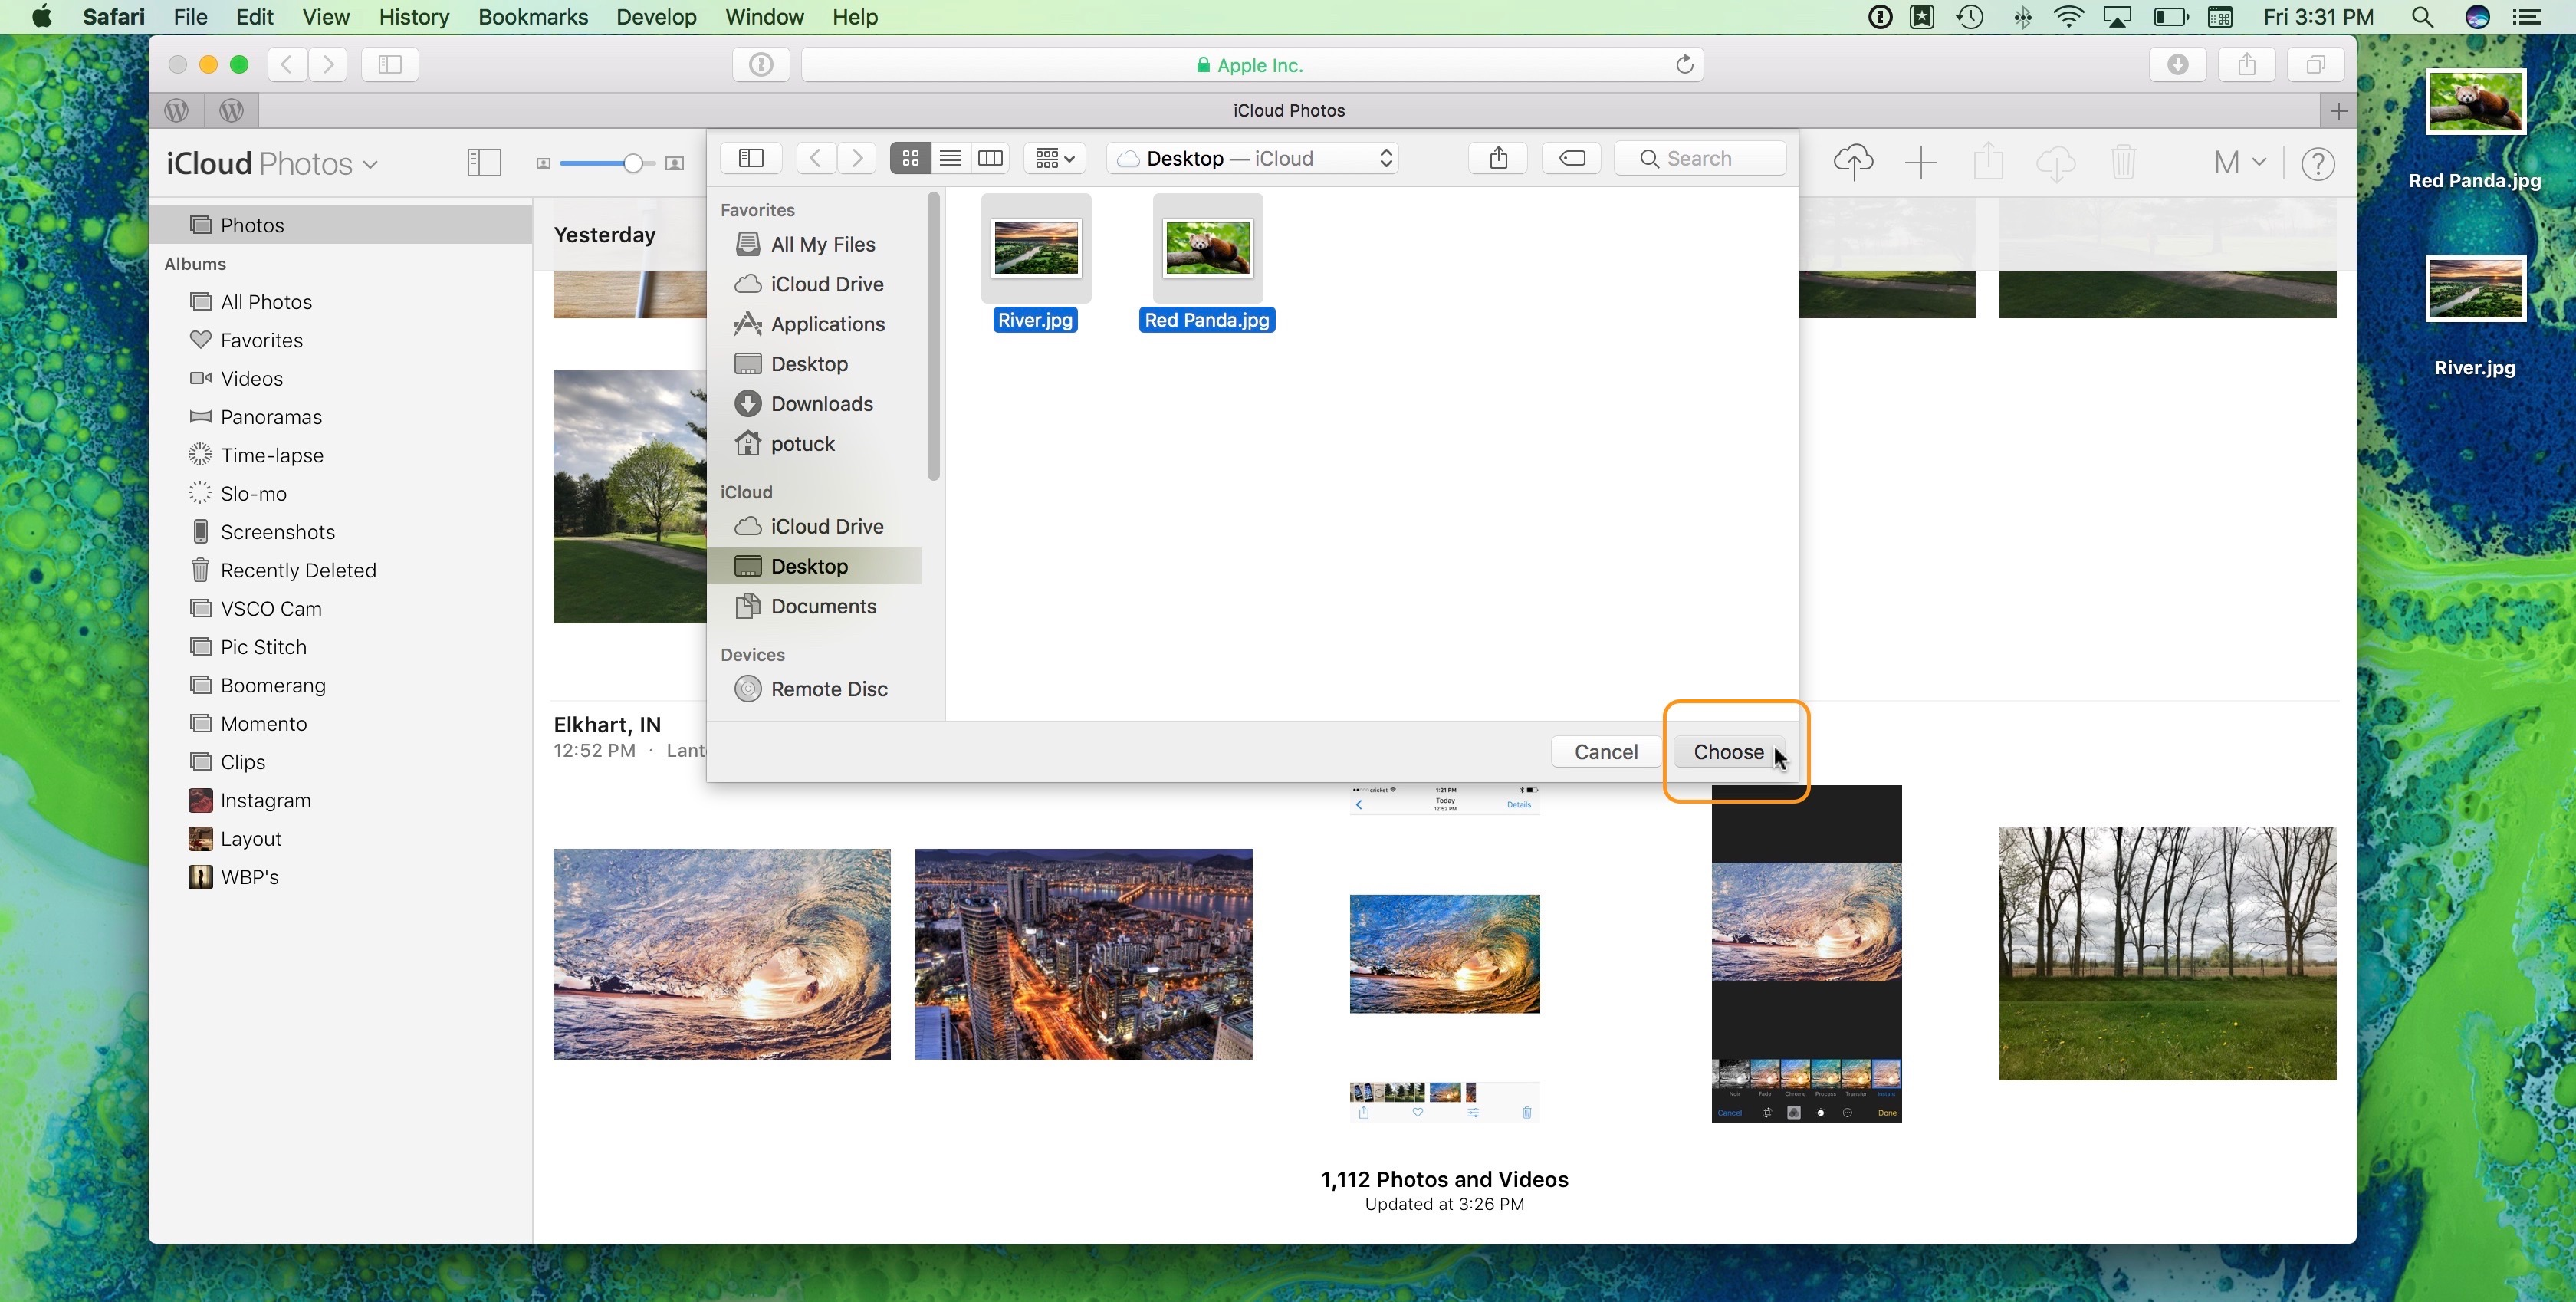 Image showing how to upload photos to iCloud Photo Library from iCloud.com